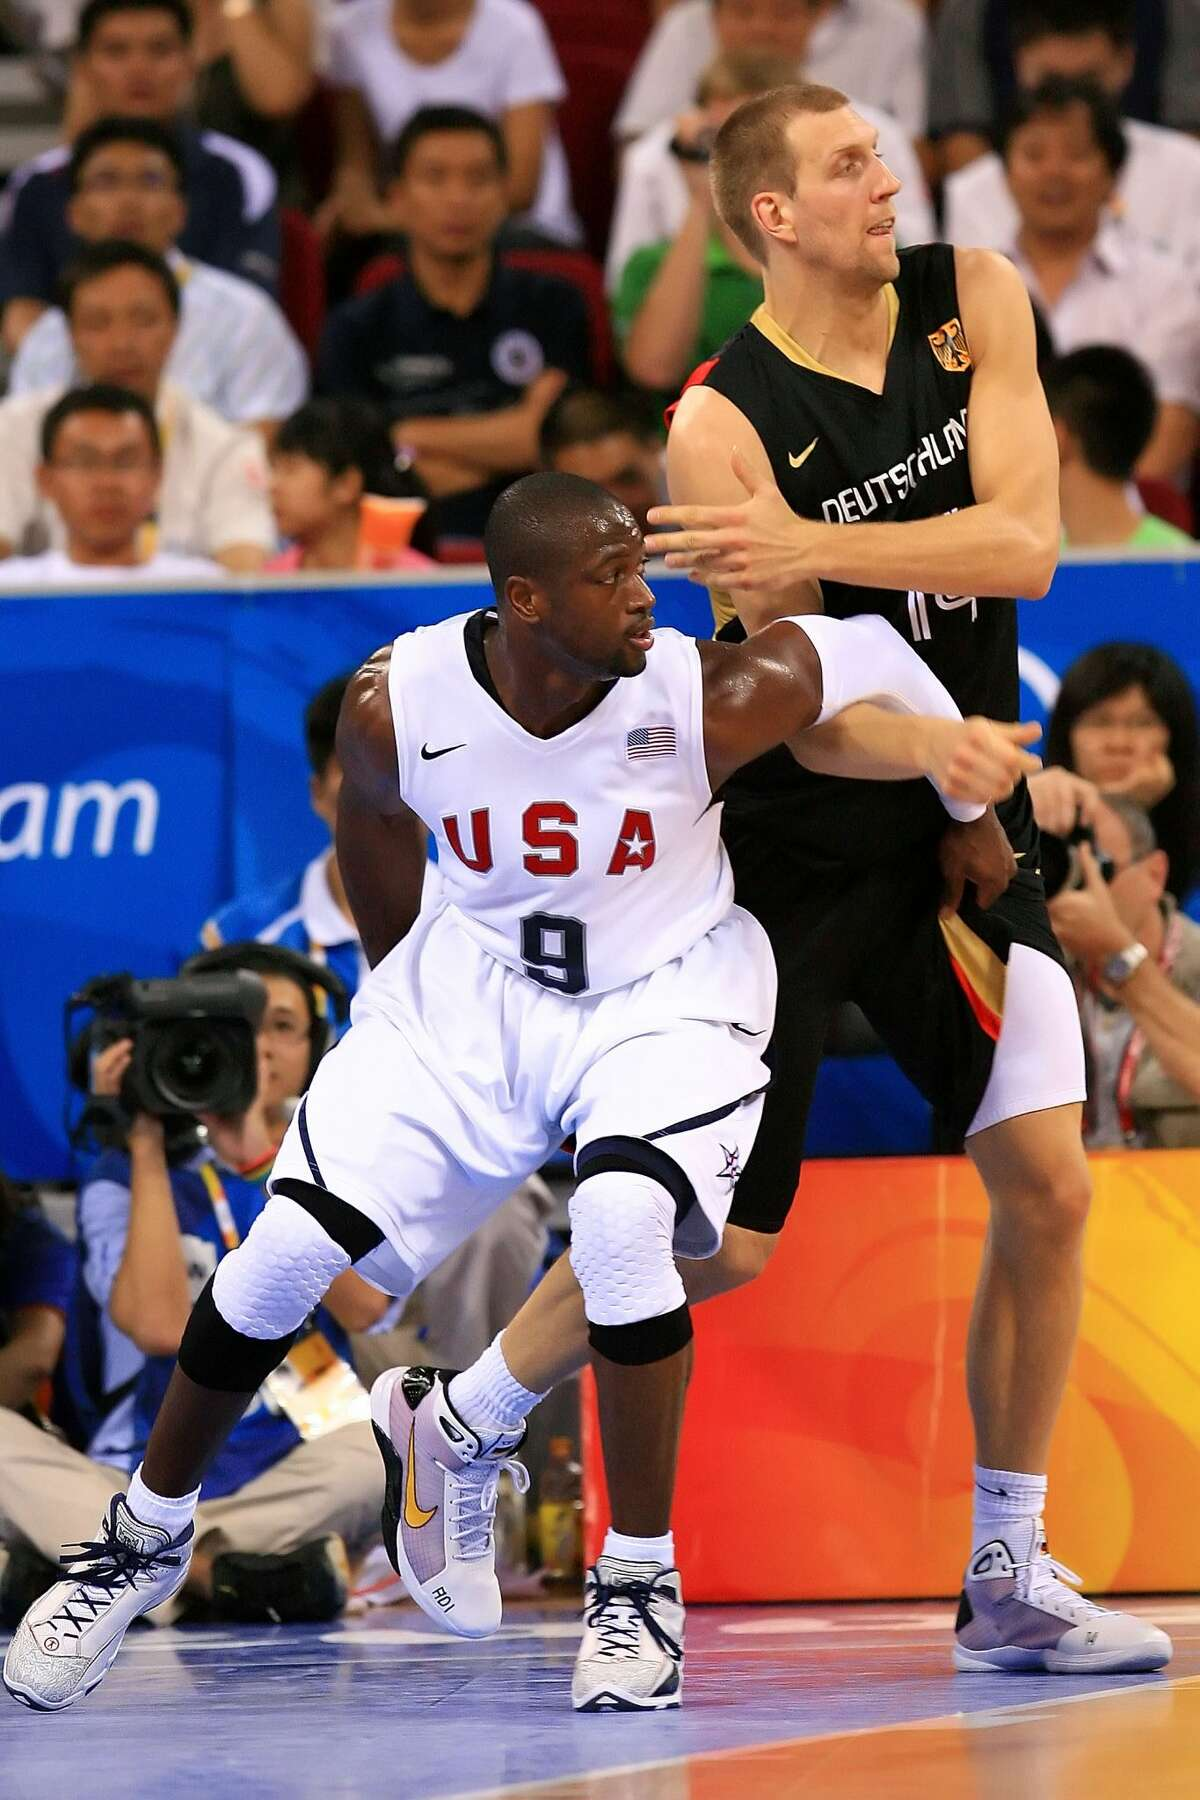 2008 Beijing Olympics - Group play (+49) United States 106, Germany 57